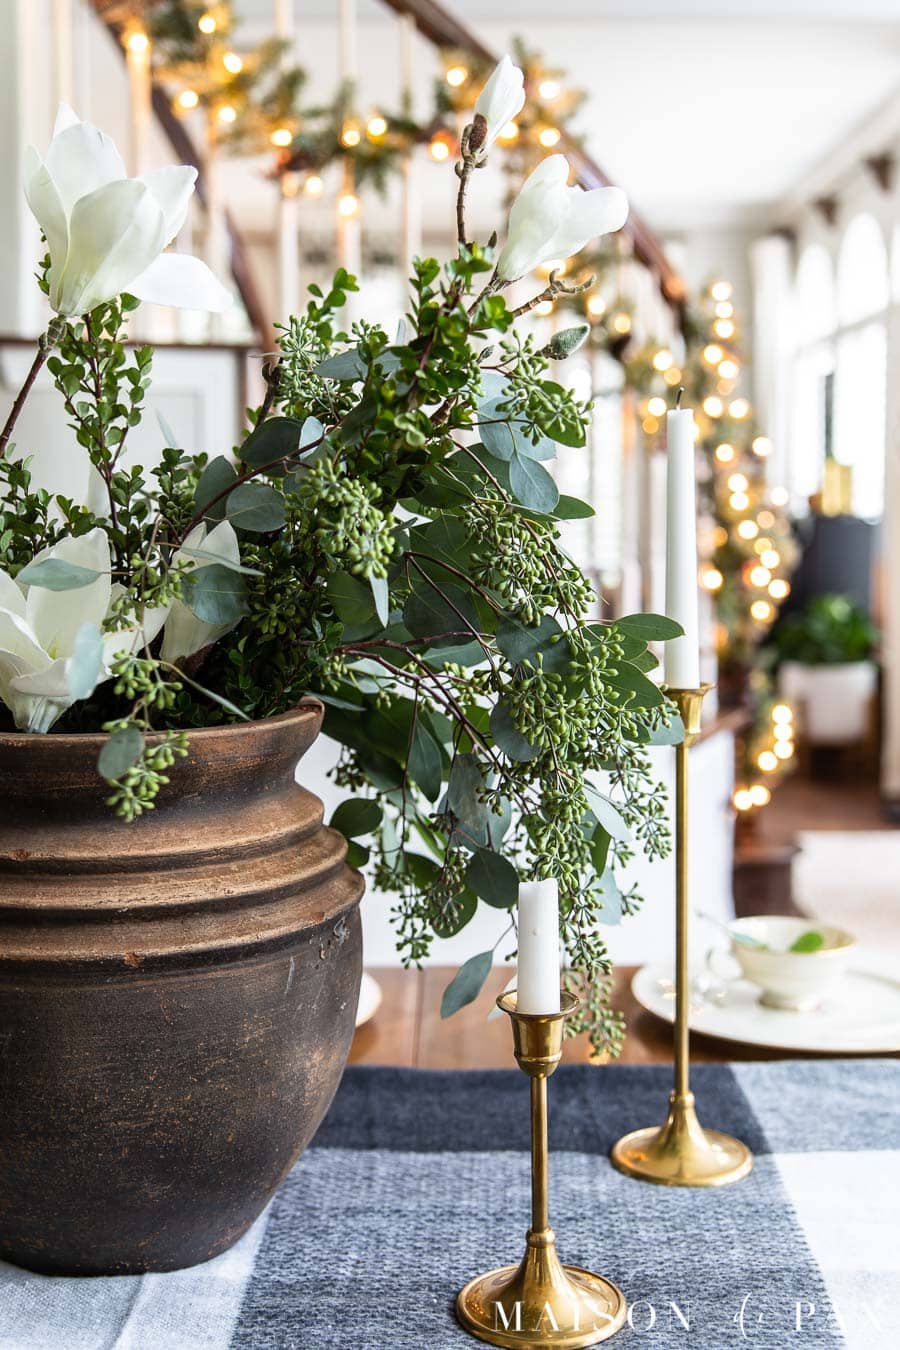 green and white holiday centerpiece with christmas lights | Maison de Pax